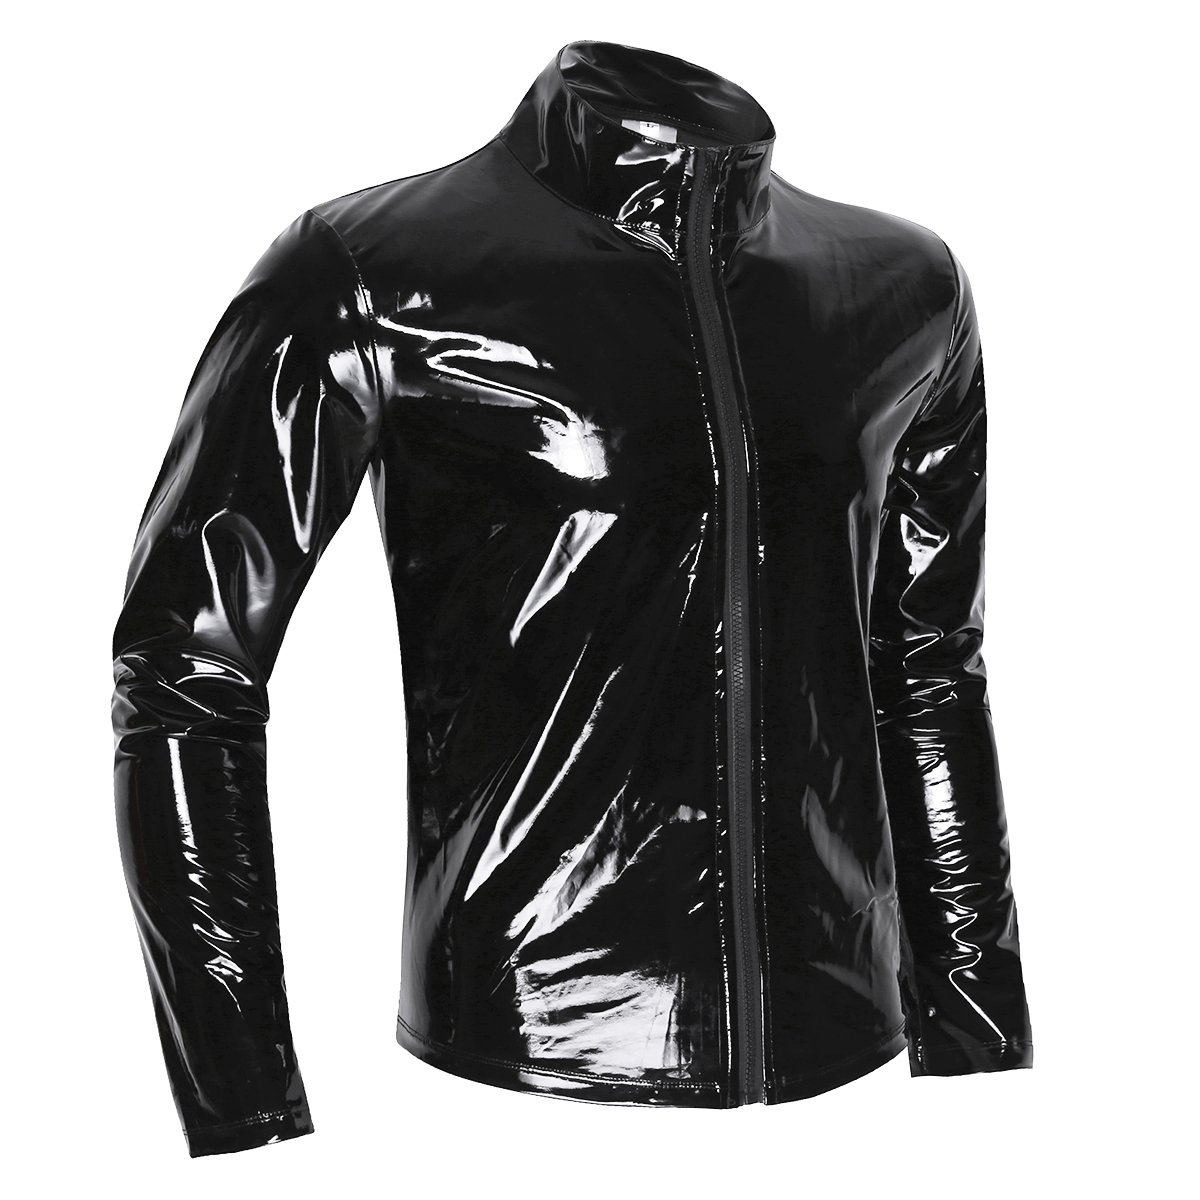 Agoky Men's Metallic Faux Leather Front-Zip Mock Neck Nightclub Style T-Shirt Top Coat Black XX-Large by Agoky (Image #2)